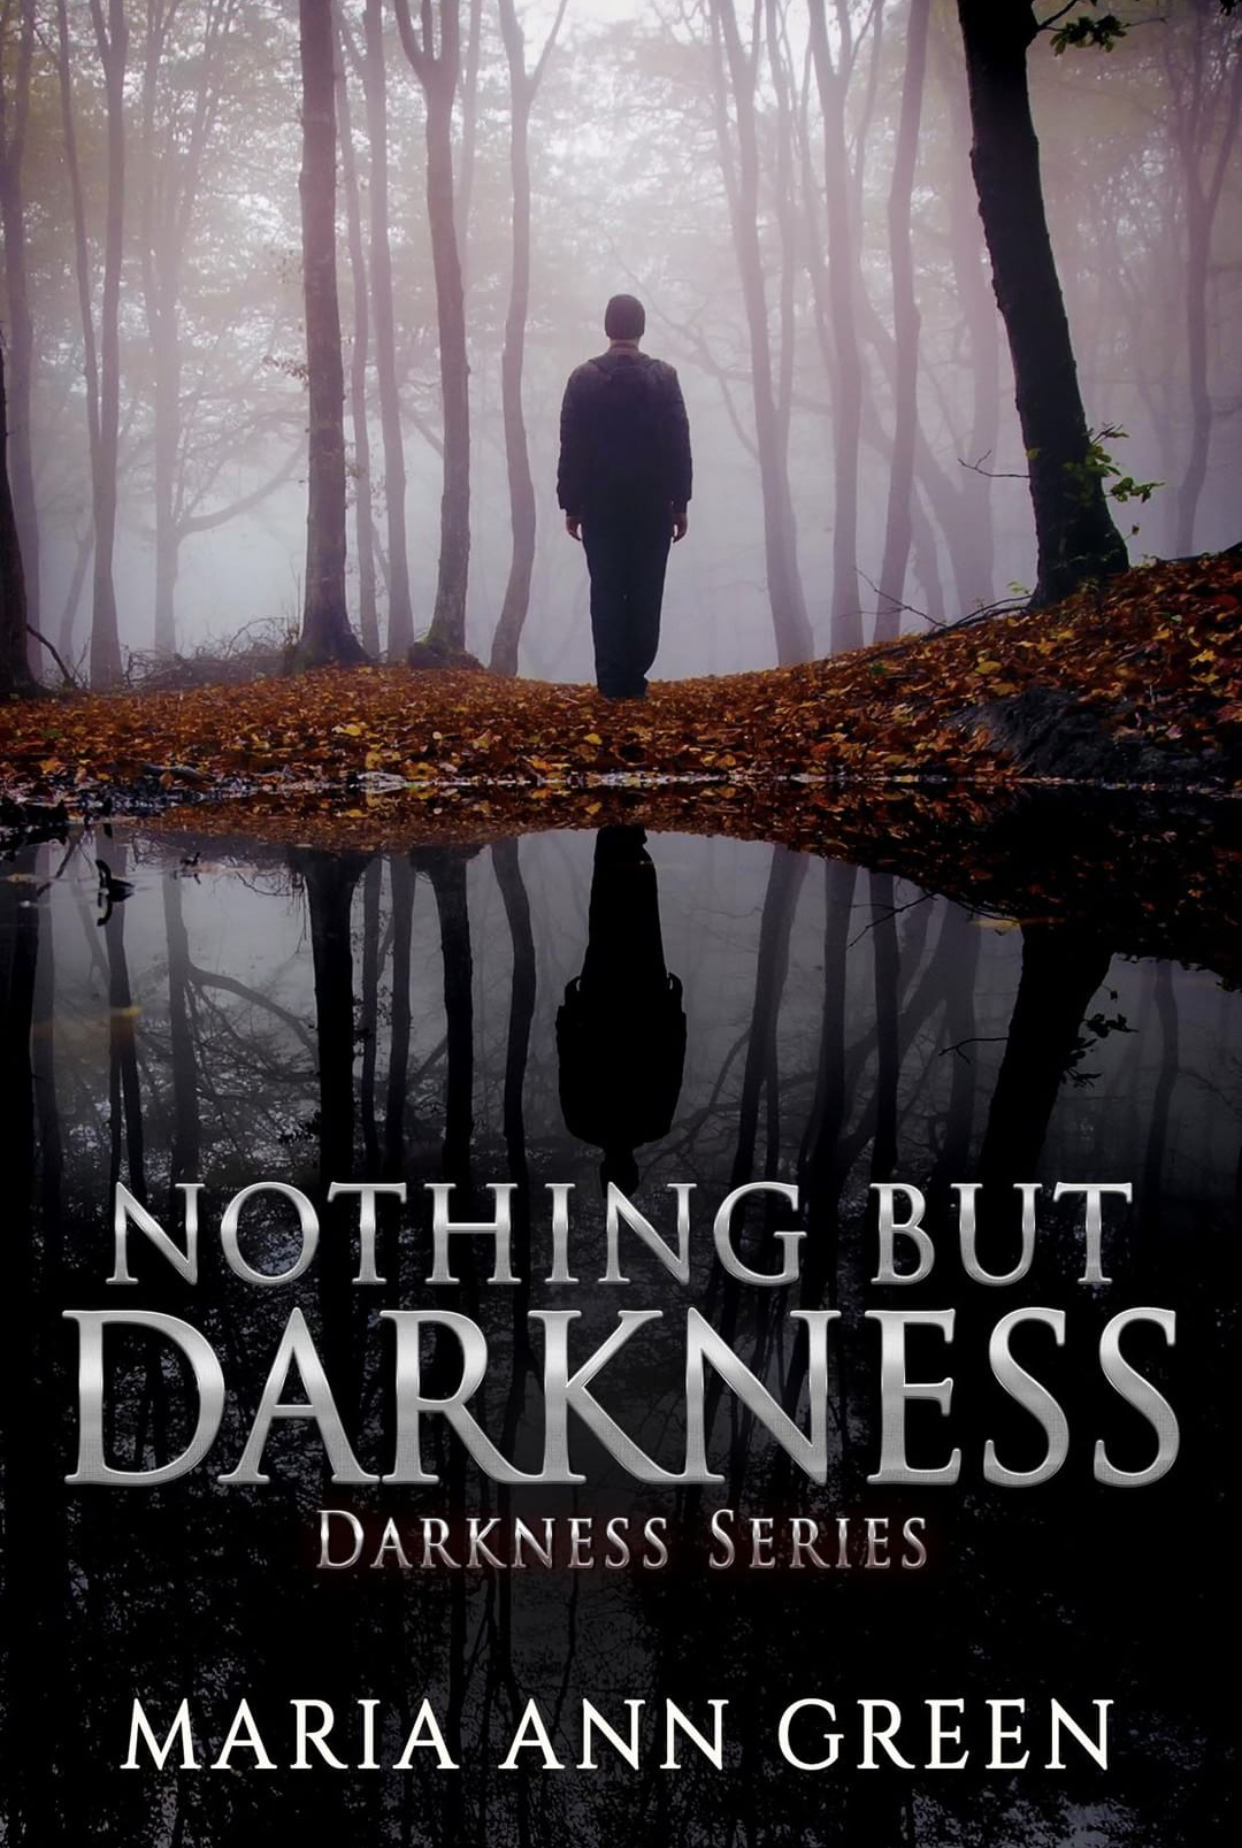 Nothing But Darkness by Maria Ann Green is available fore pre-order starting July 9, 2018 and is released July 27, 2018.